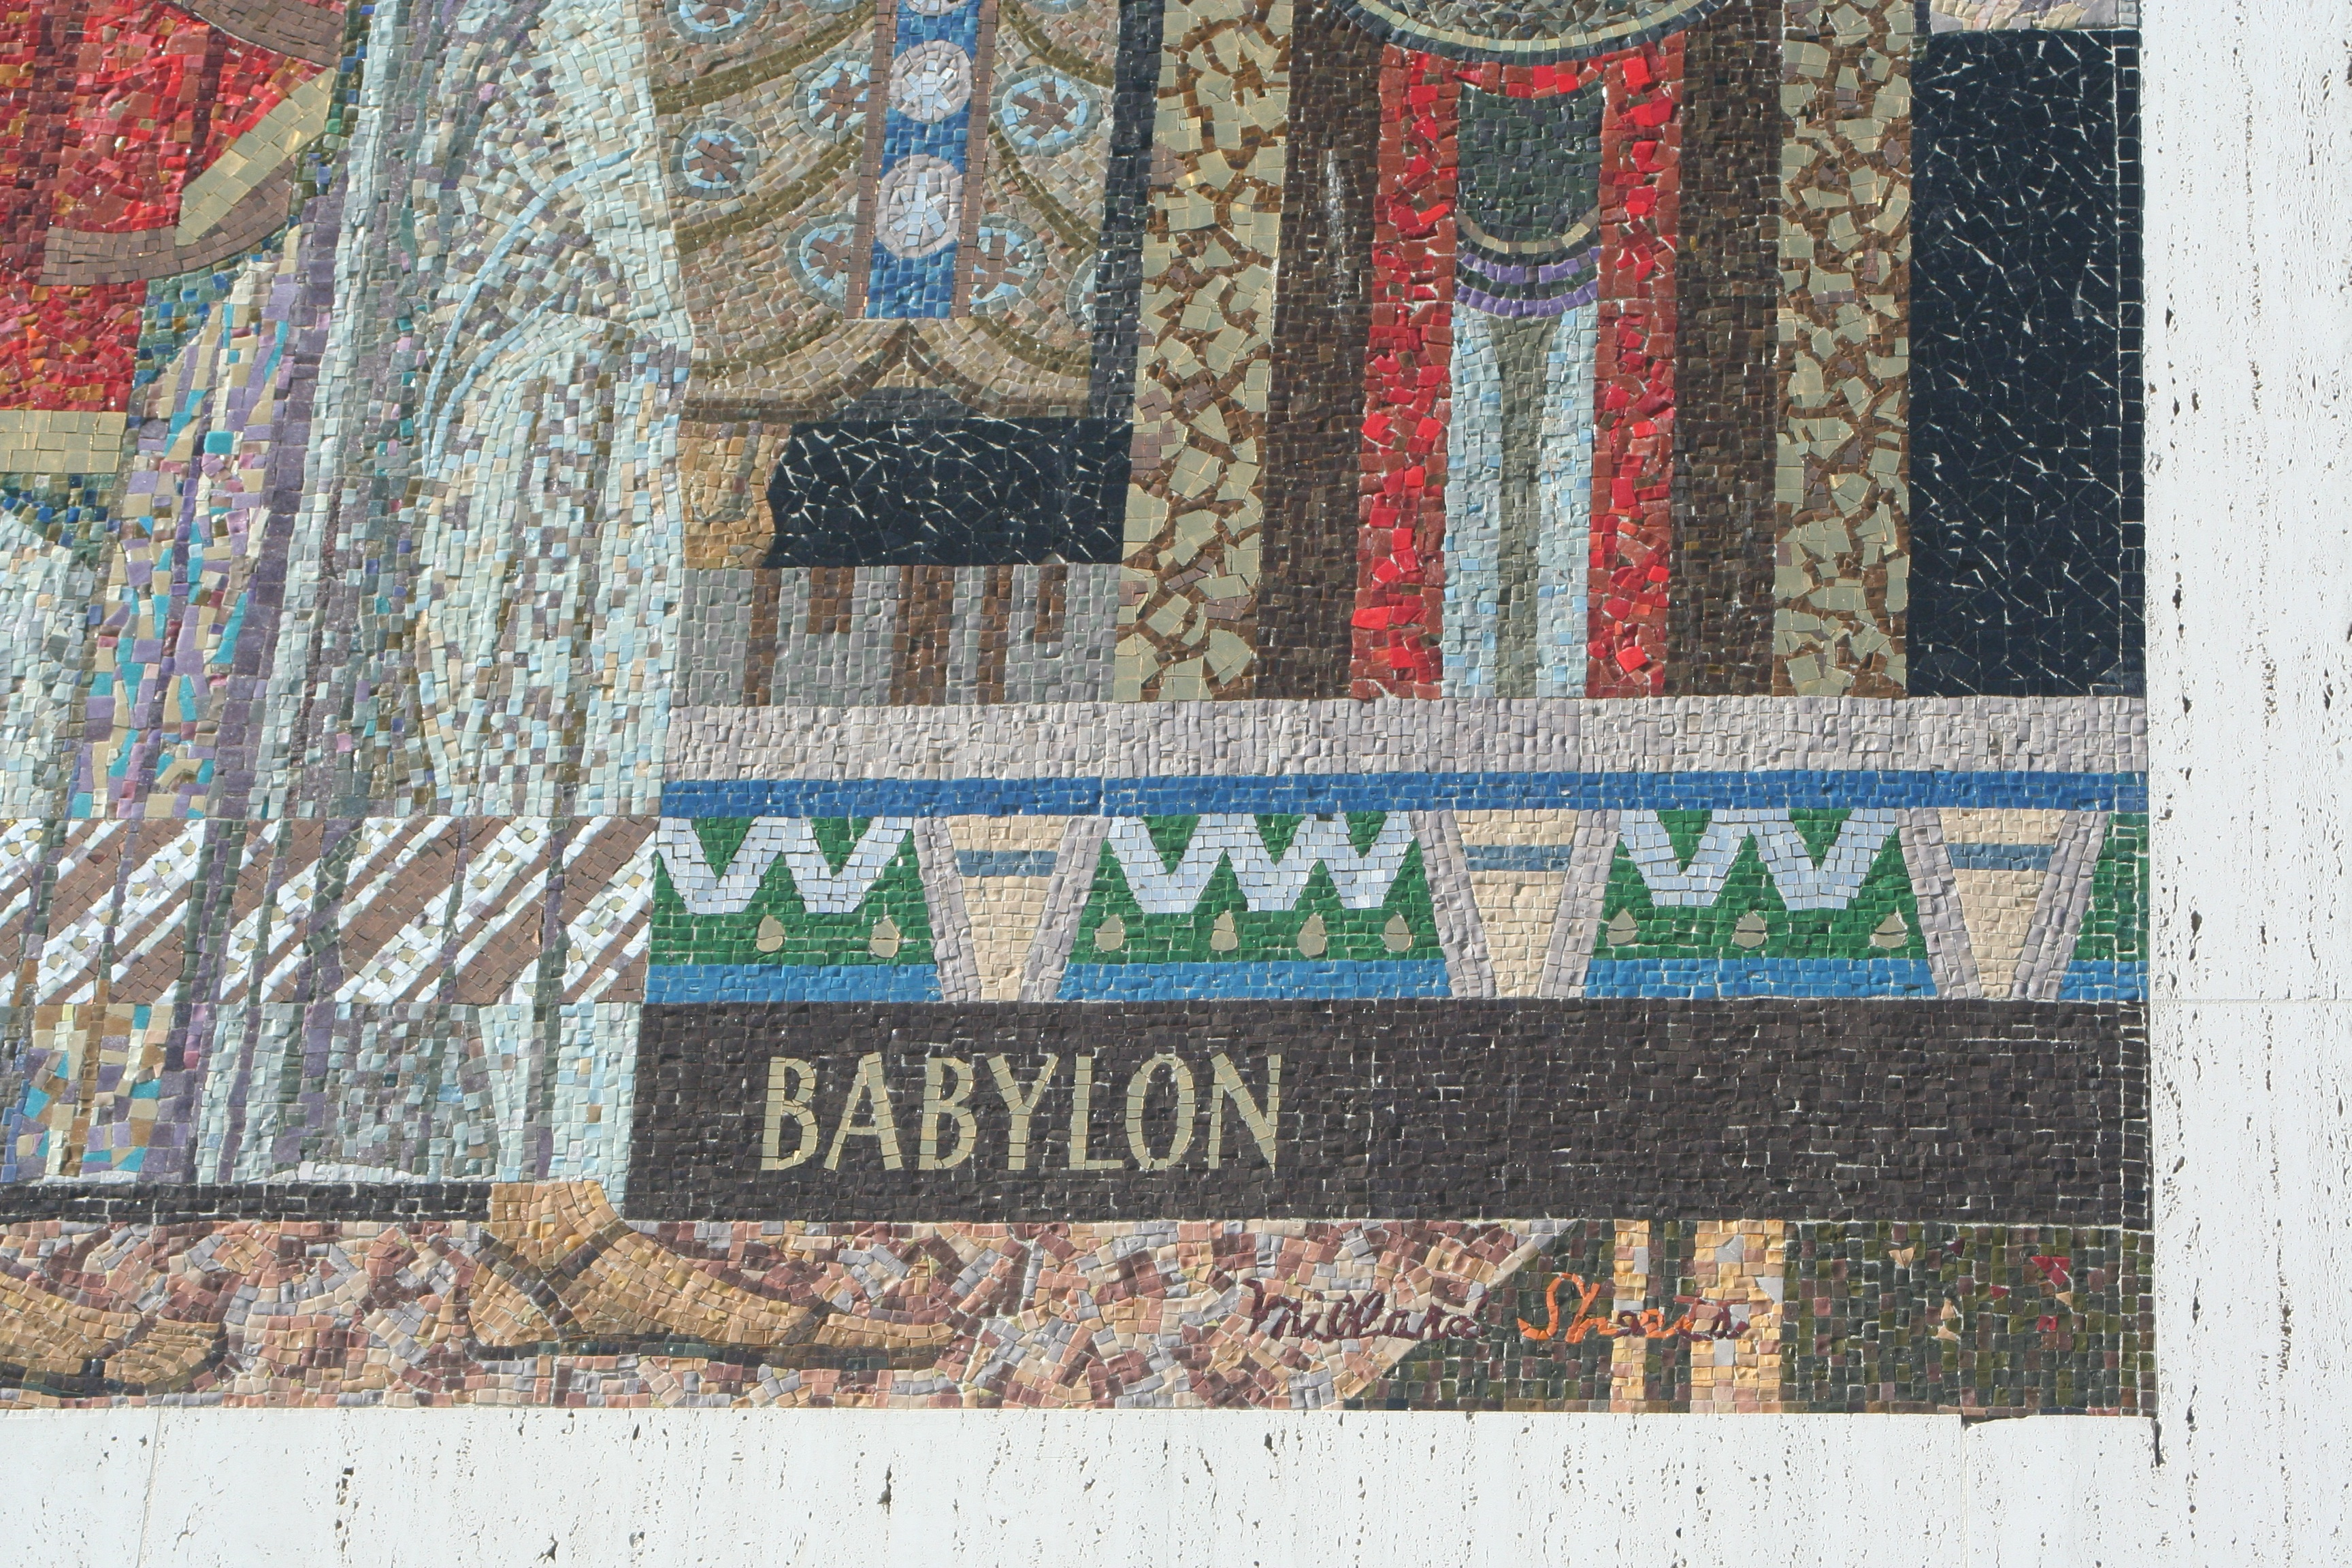 detail of Babylon with signature, 1963